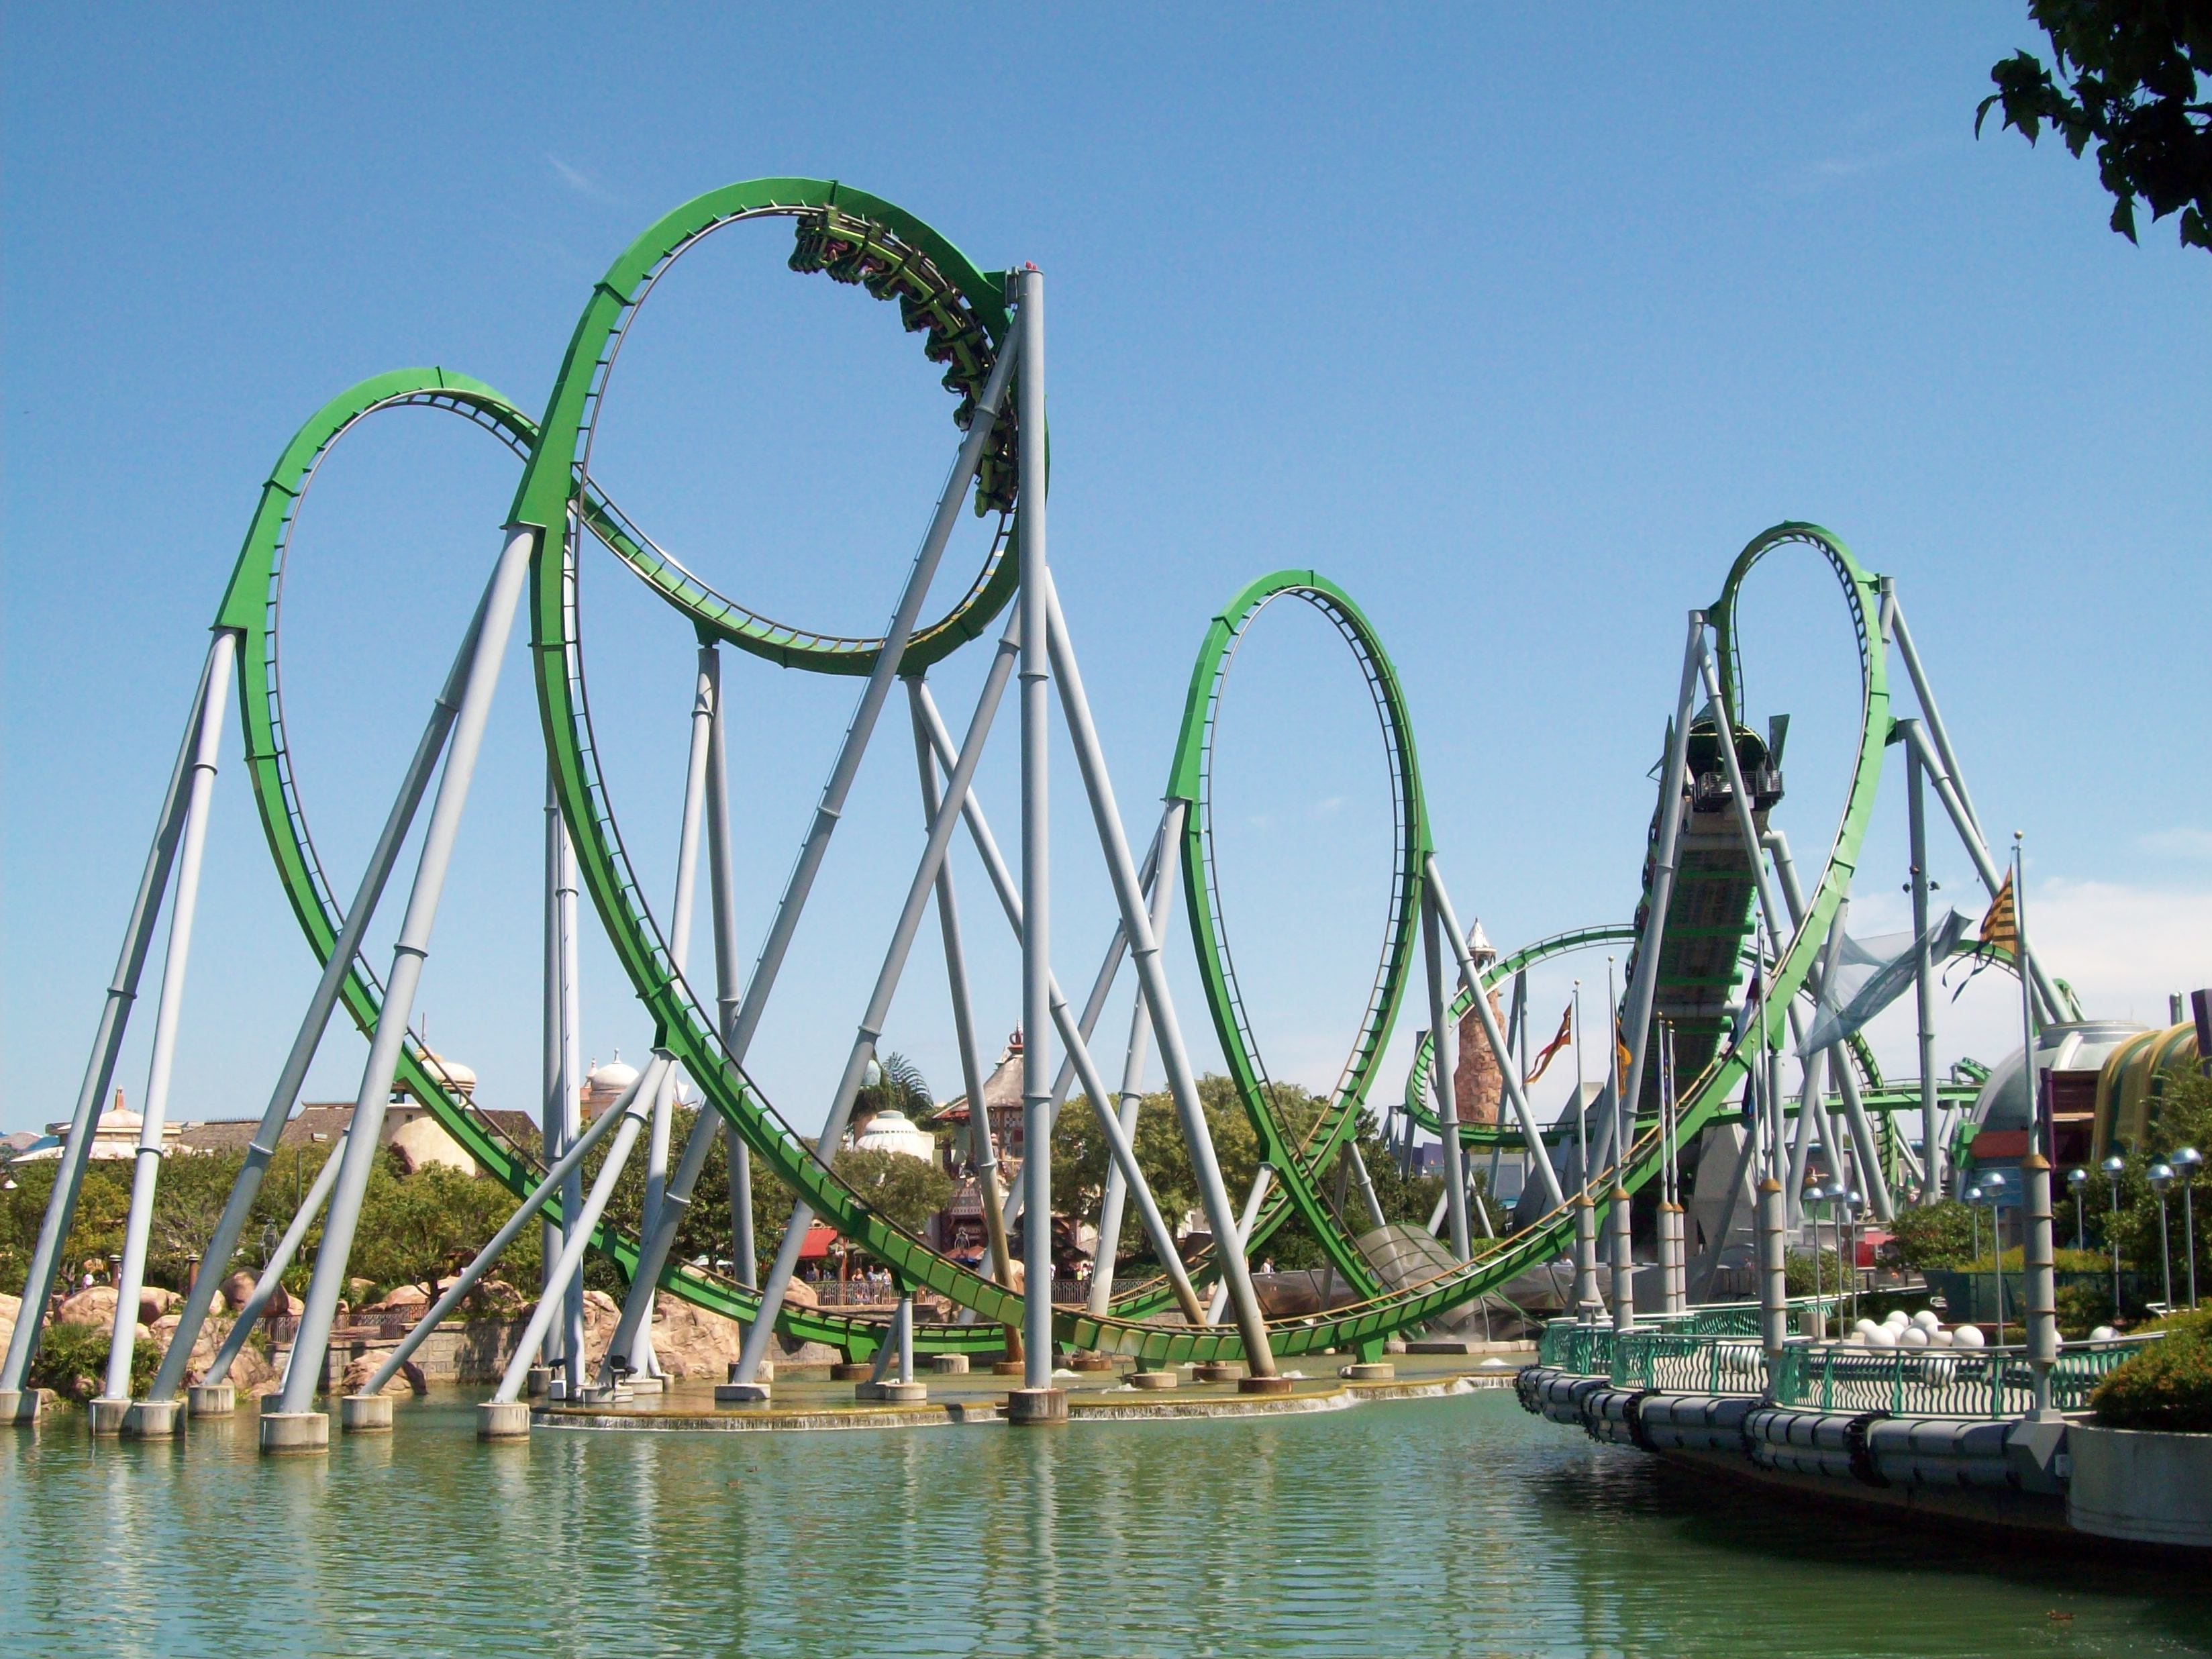 an analysis of the topic of the roller coaster thrill The above discussion and force analysis applies to the circular-like motion of a roller coaster car in a clothoid loop the second section along a roller coaster track where circular motion is experienced is along the small dips and hills.